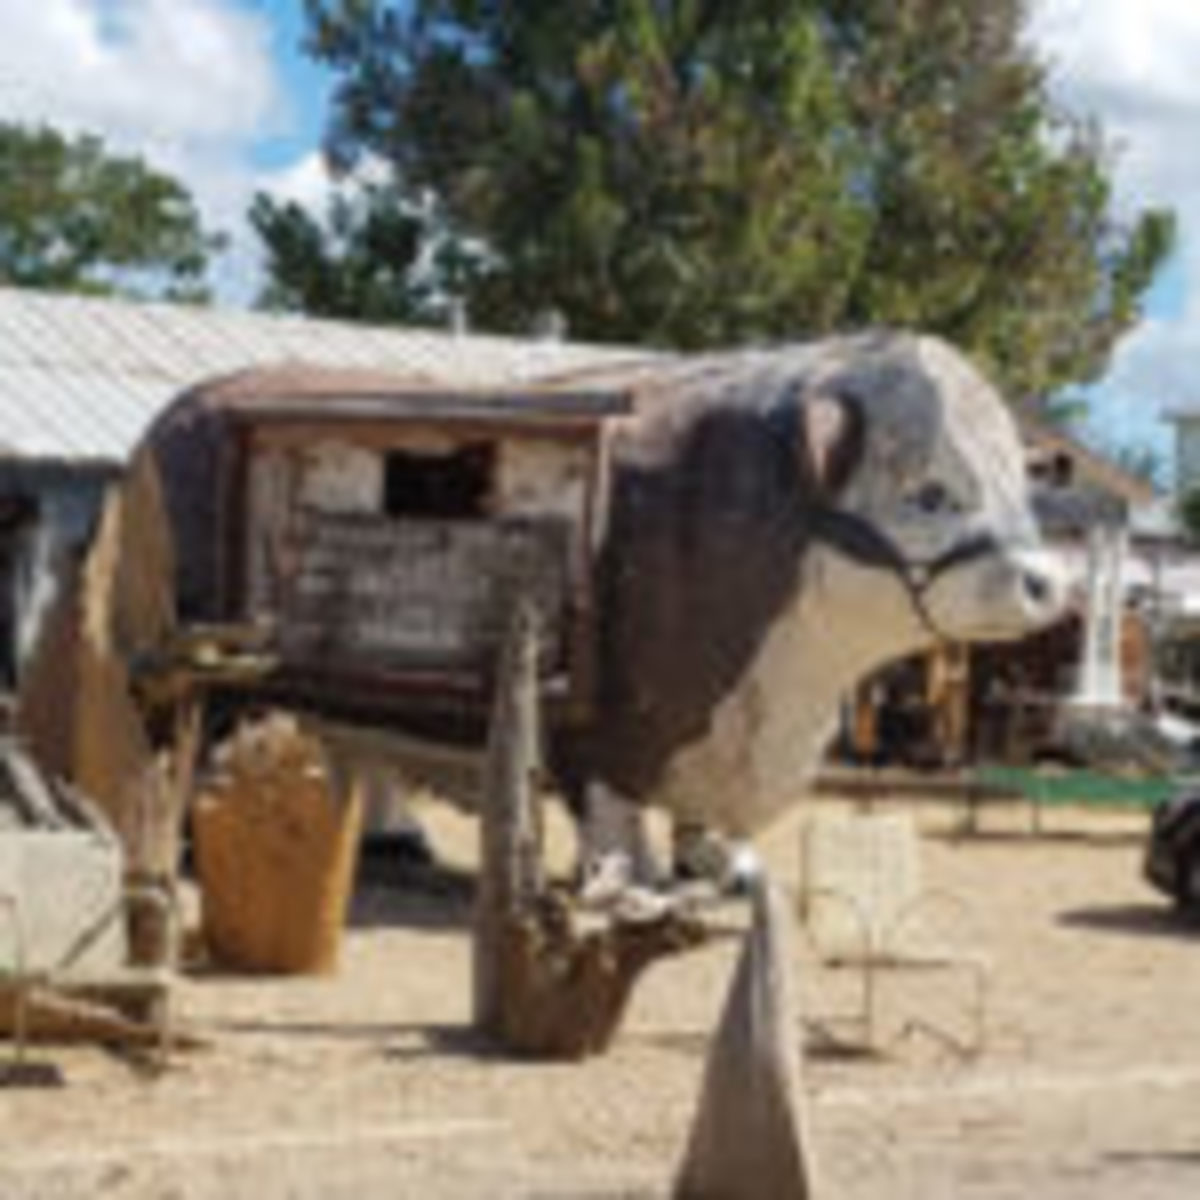 This life-size pâpiér mâché steer shows how eclectic the offerings of the Round Top antiques fairs truly are.